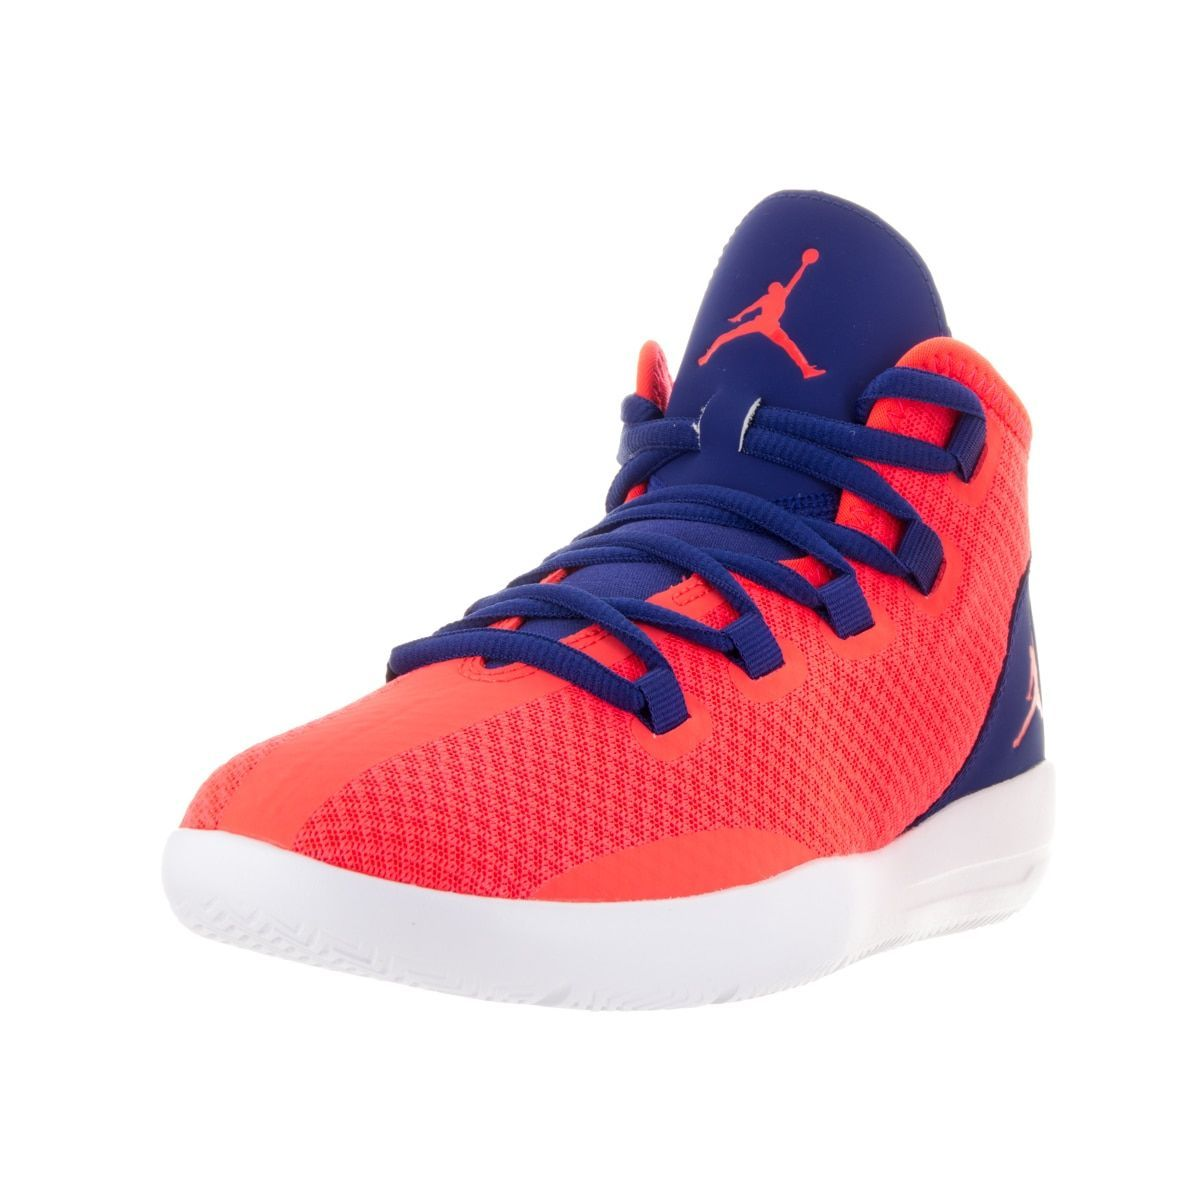 69ed475c2f04 The Jordan Reveal Premium is introduced in a new colorway of wolf grey  orange…